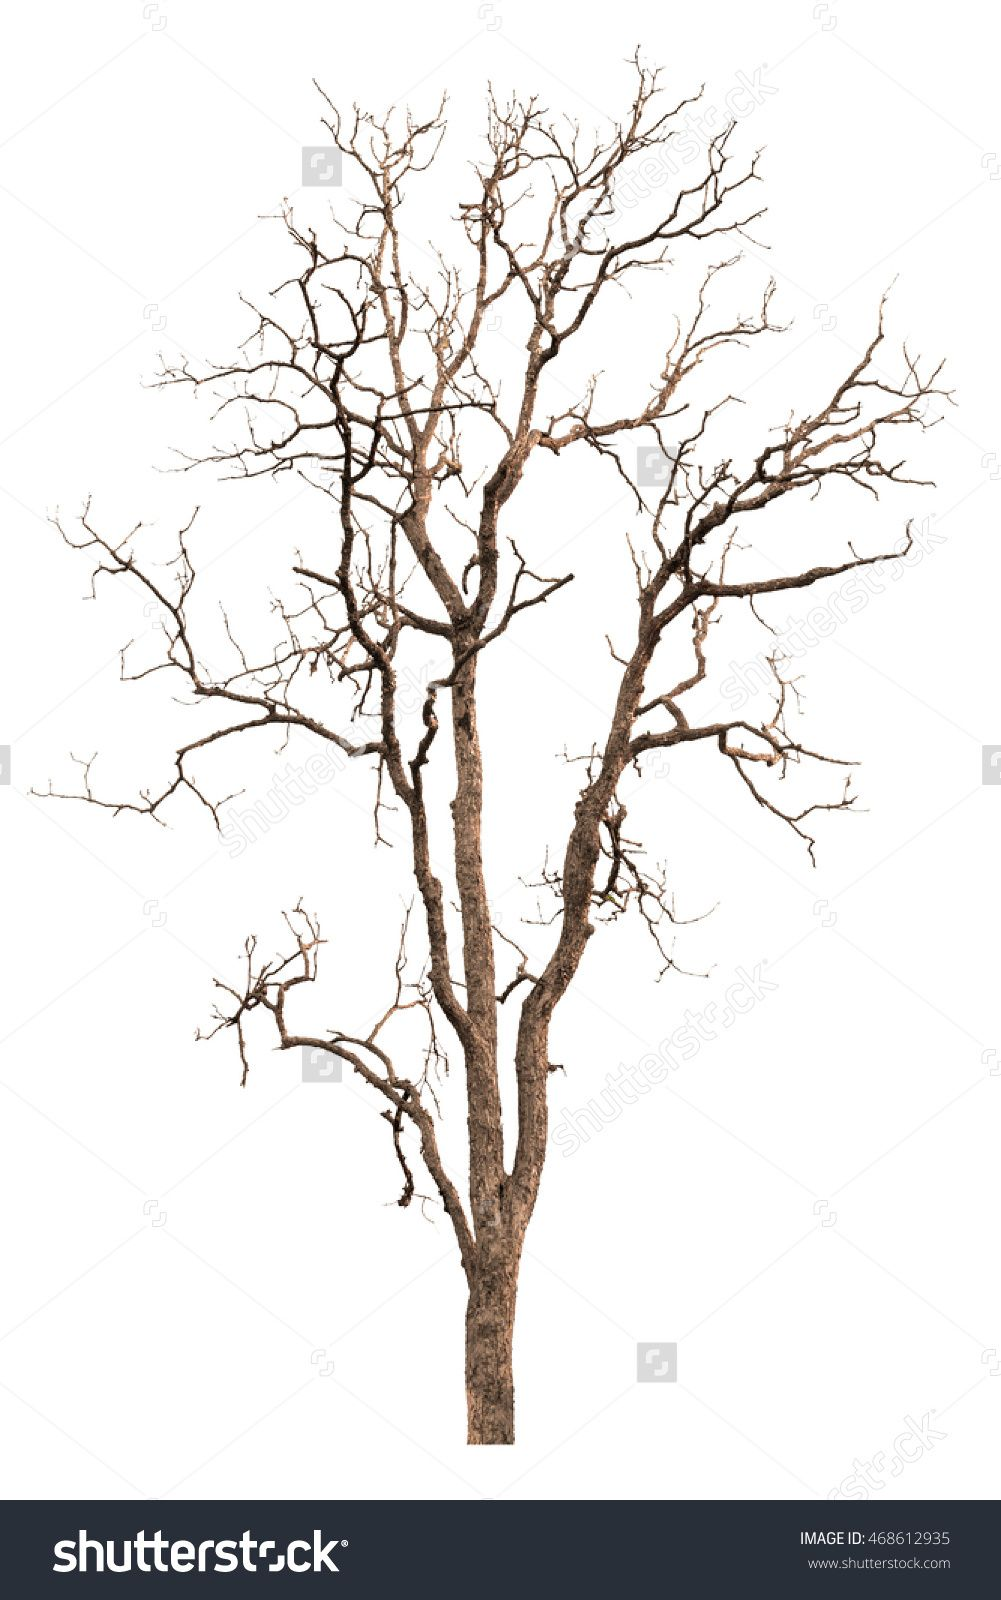 Dead Tree Isolated On White Background With Clipping Path Tree Dead Dry Isolated Nature White B Dry Tree Tree Photoshop Landscape Architecture Graphics